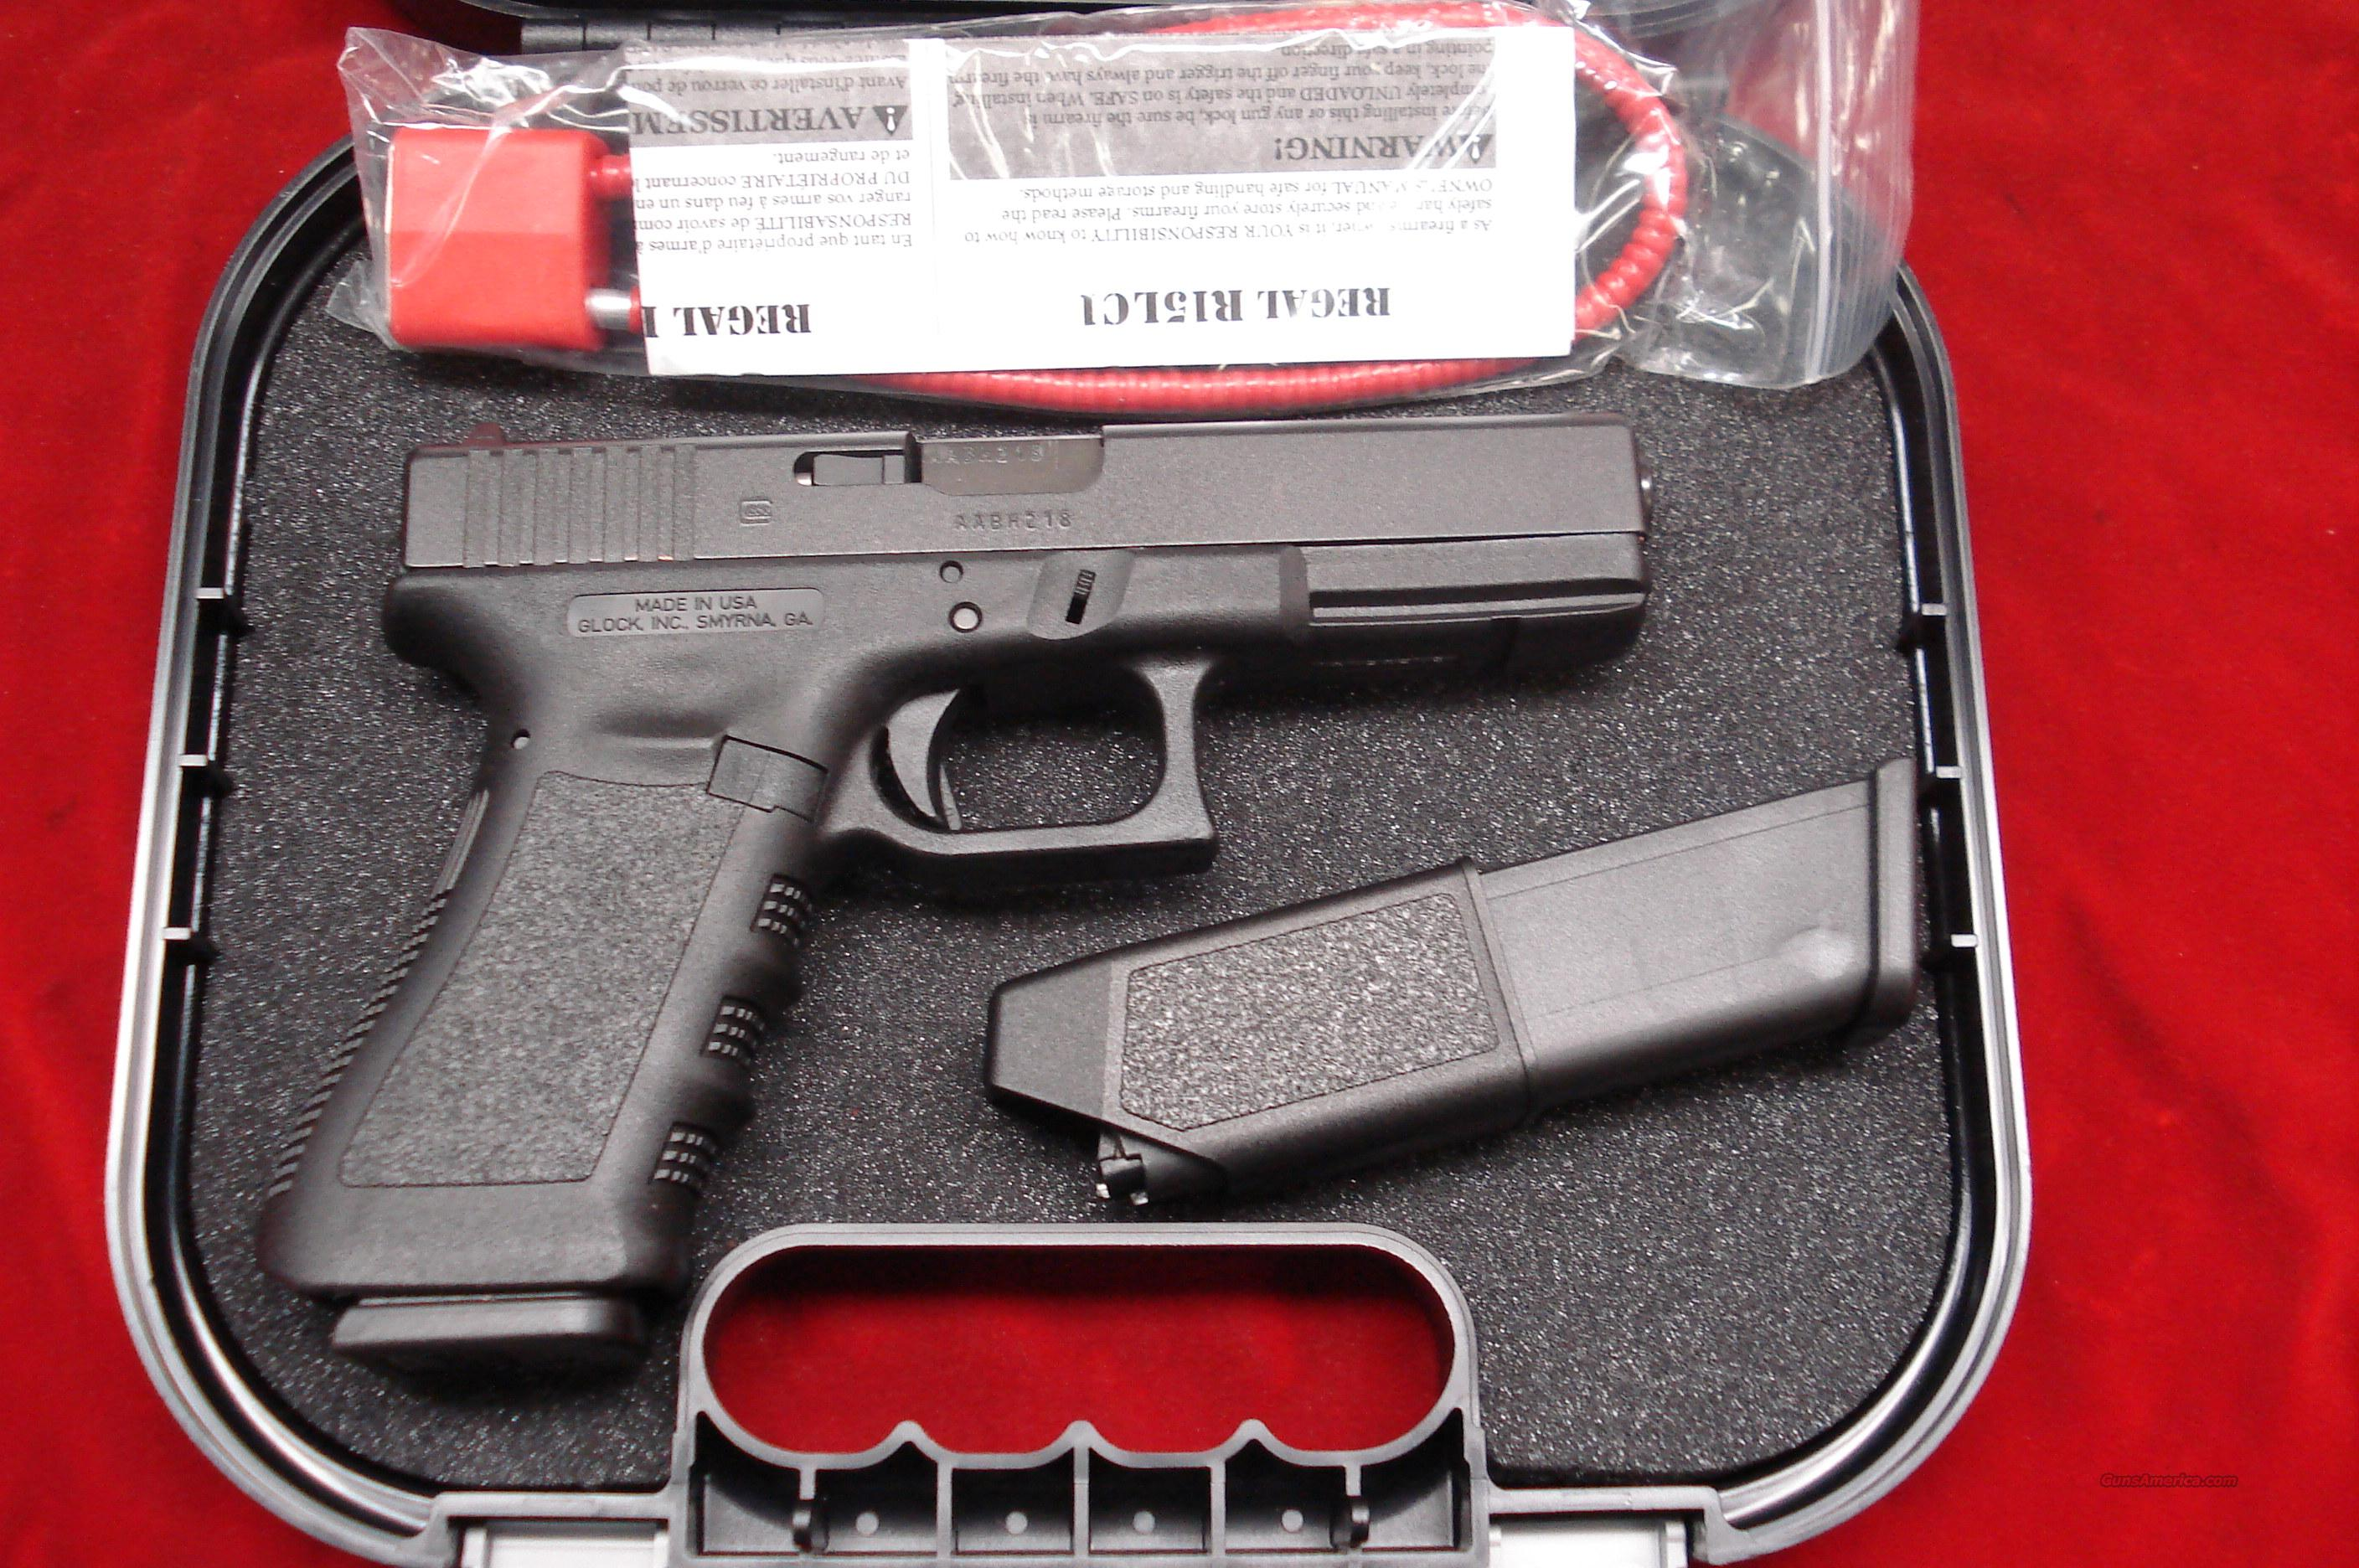 GLOCK MODEL 17 GEN3 9MM WITH 10 ROUND MAGAZINES NEW   Guns > Pistols > Glock Pistols > 17